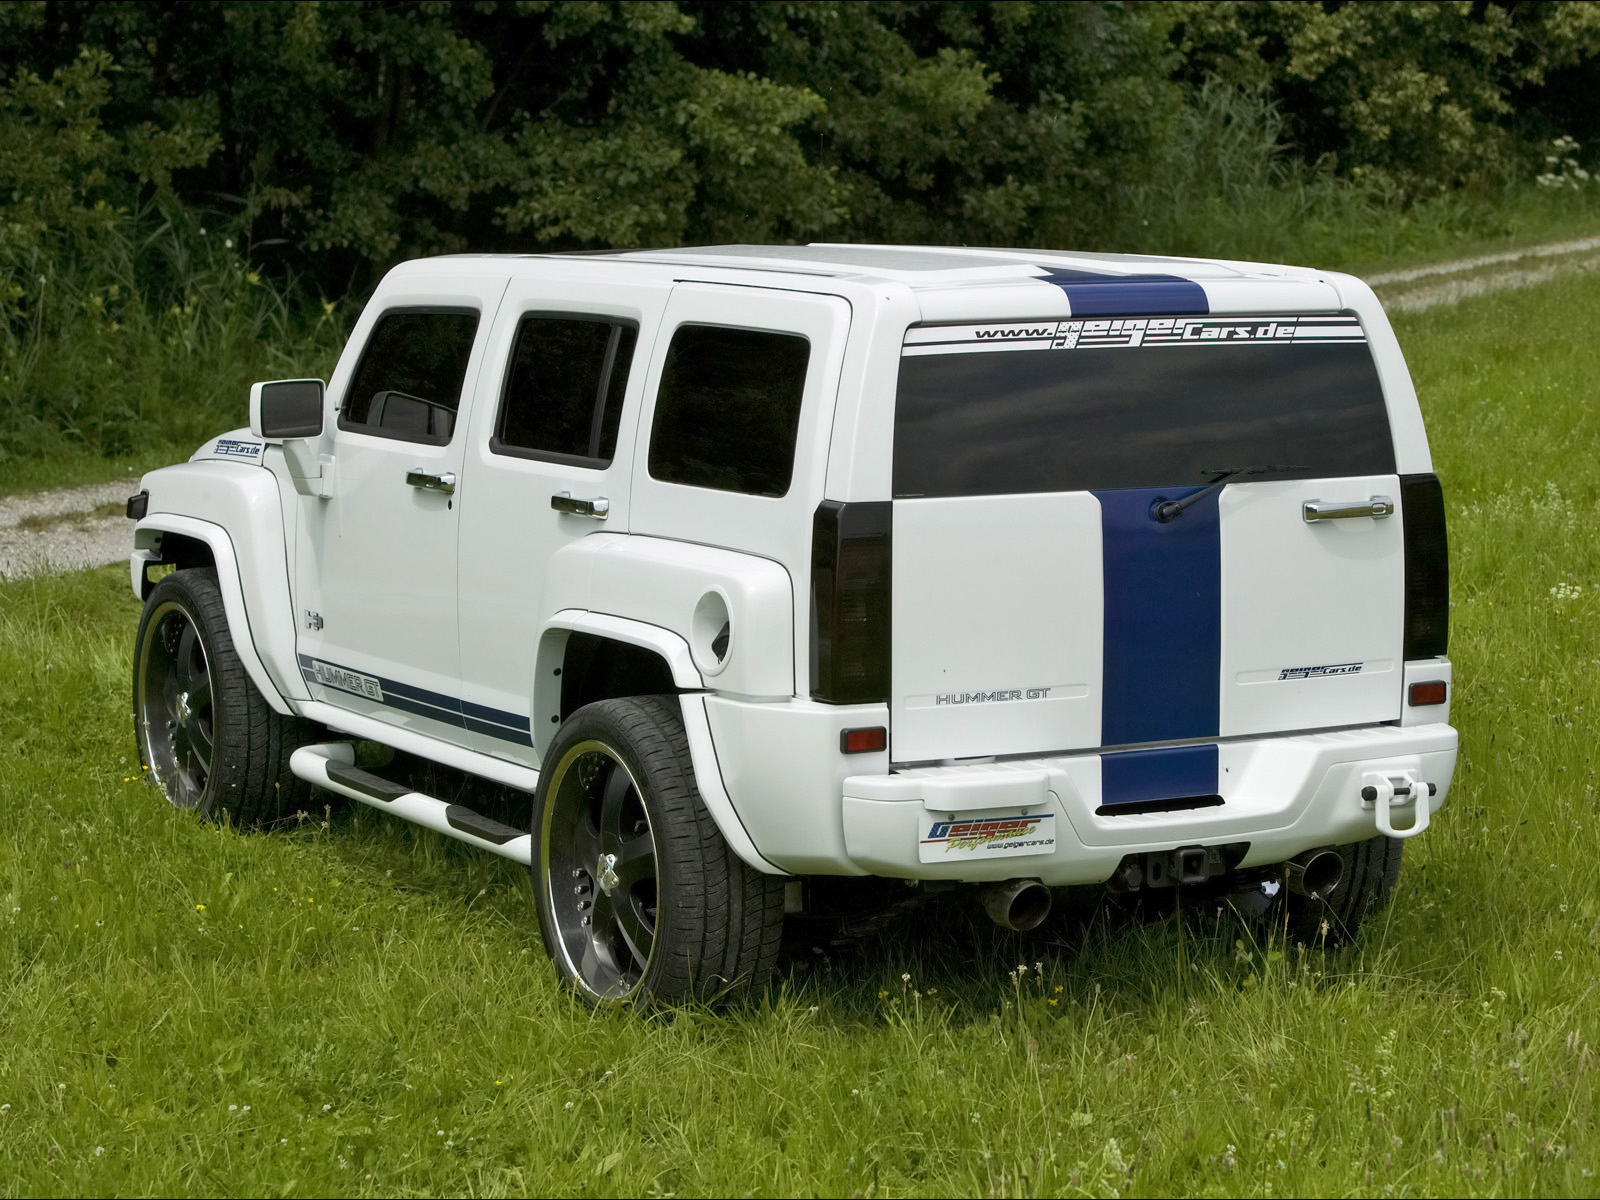 Geigercars hummer h3 gt photos photogallery with 12 pics new geigercars hummer h3 gt pictures vanachro Gallery